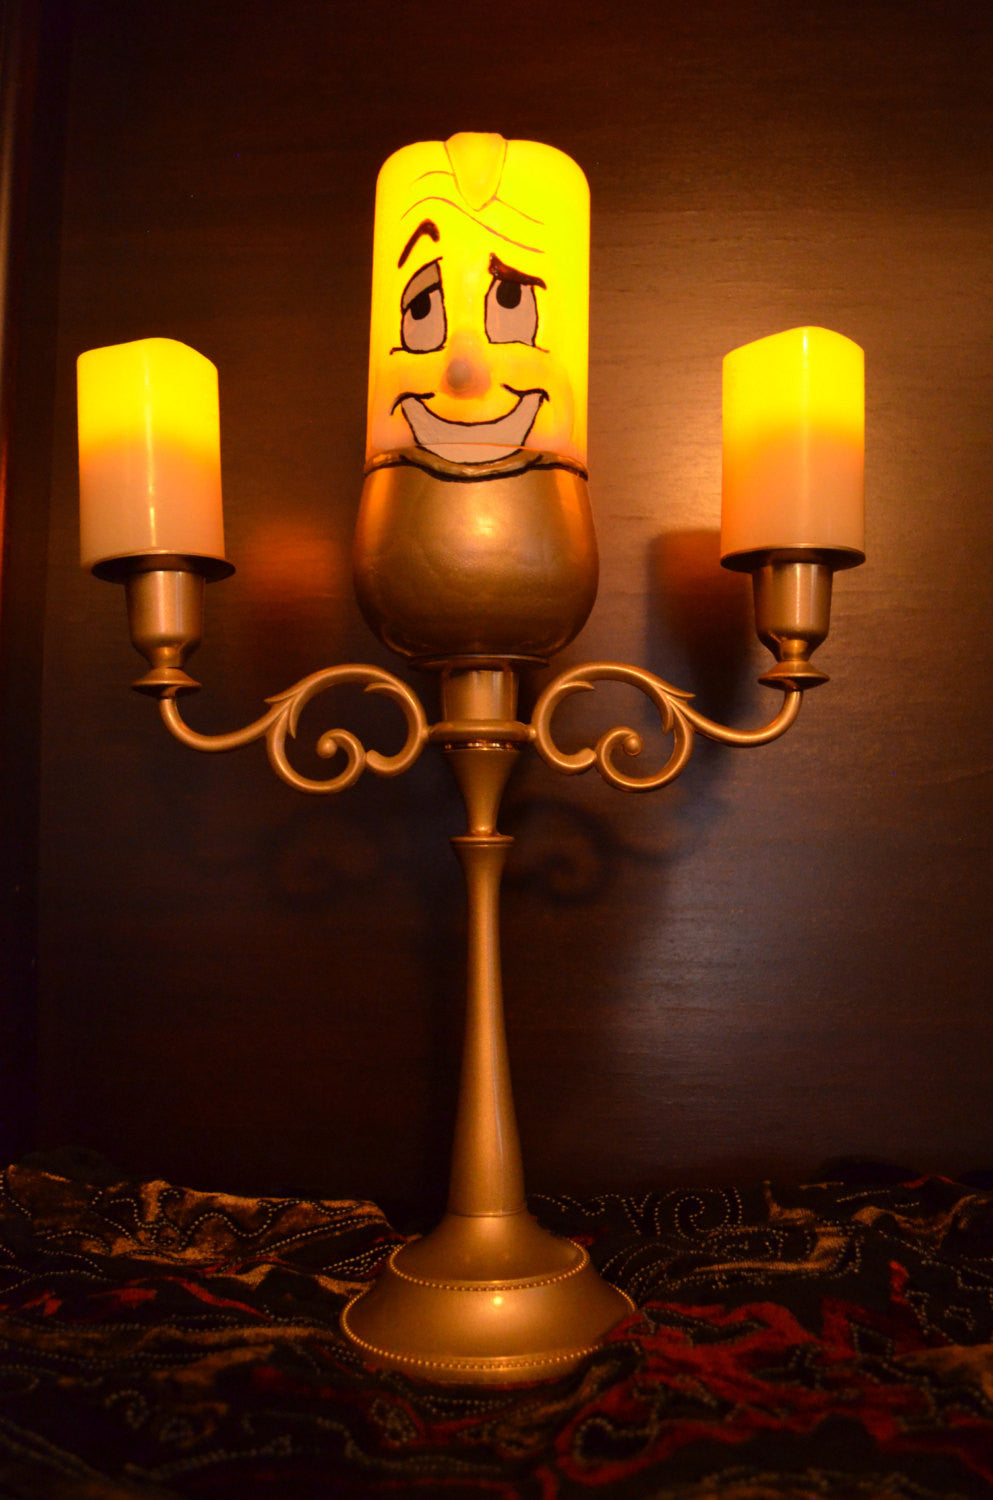 Sale Lumiere Beauty And The Beast Led Candelabra Replica Figure Lig Switzer S Sweets